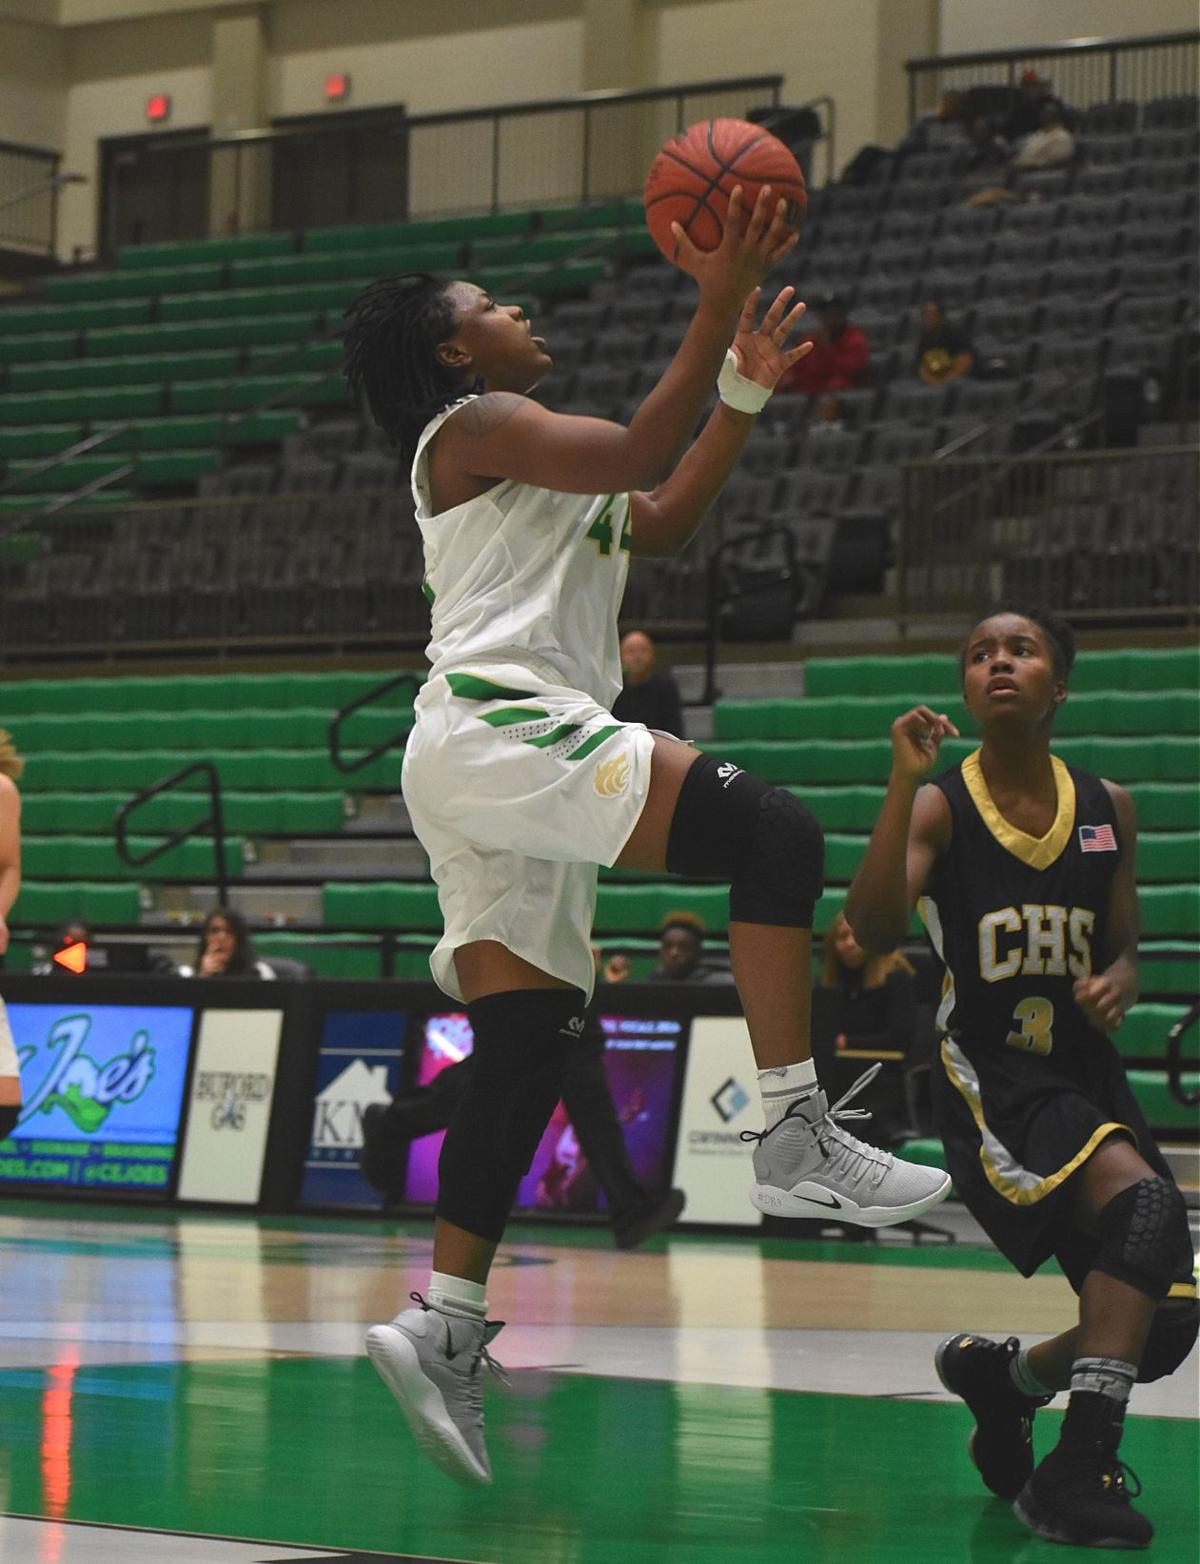 Buford girls basketball cruises past Carrollton in second round